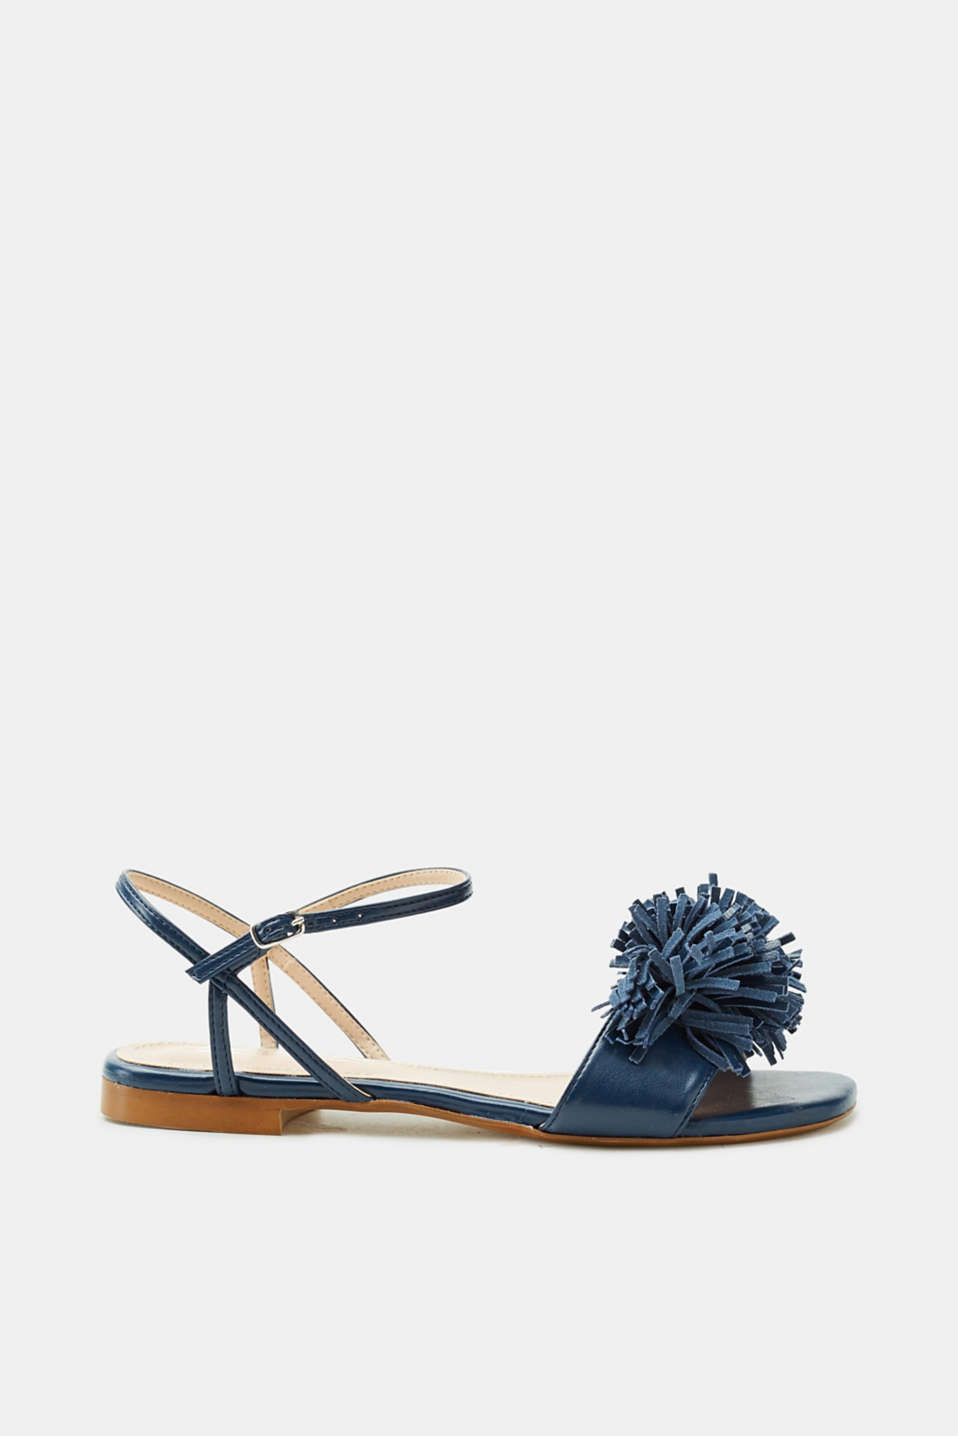 Great with summer dresses, wide trousers and, naturally, also with jeans! The pretty fringe embellishment on the toe-post is instantly eye-catching and makes these sandals a trendy summer must-have.